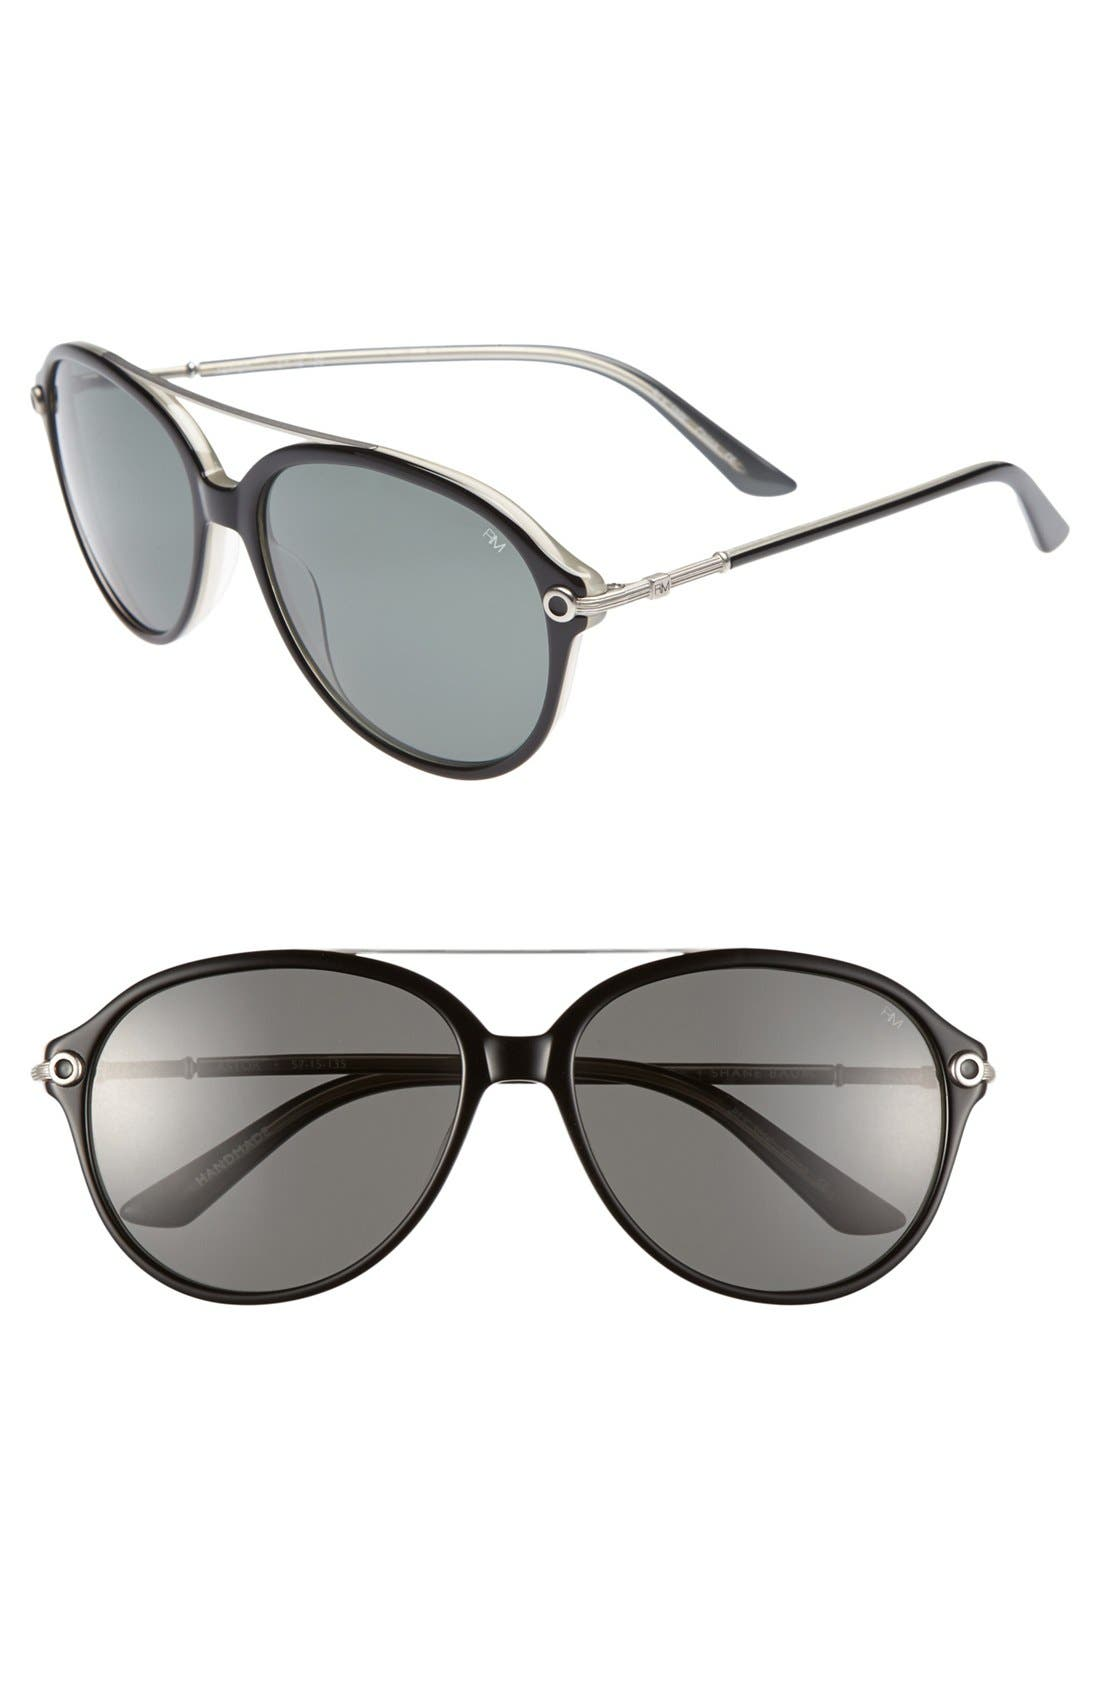 Alternate Image 1 Selected - Rebecca Minkoff 'Astor' 57mm Sunglasses